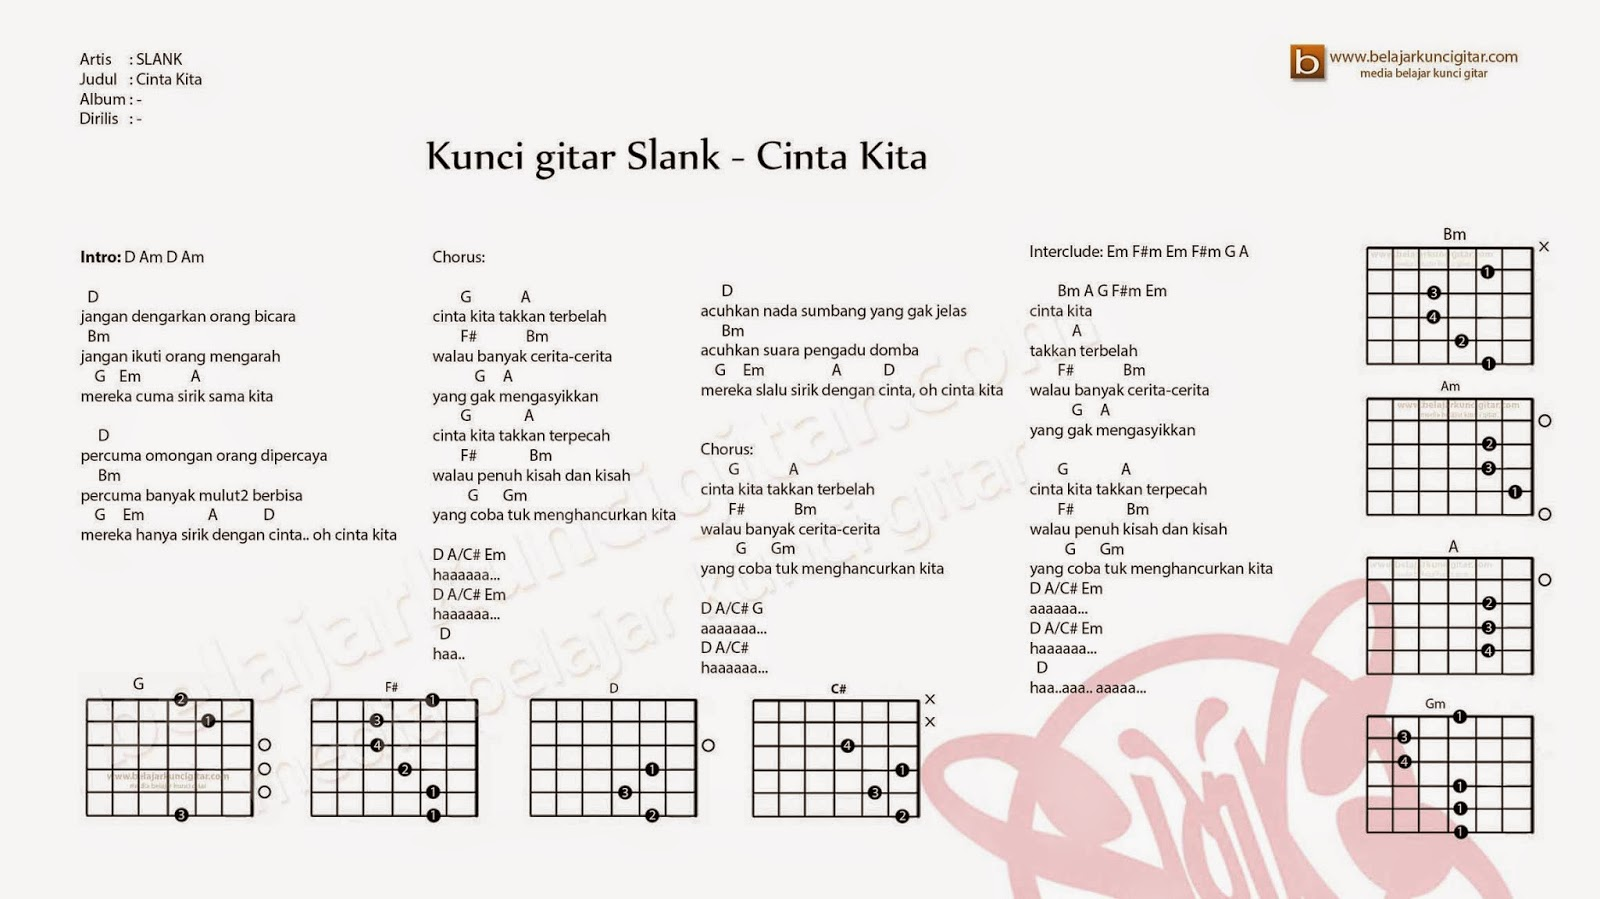 Lirik Lagu Slank | Search Results | Fun Coloring Pages